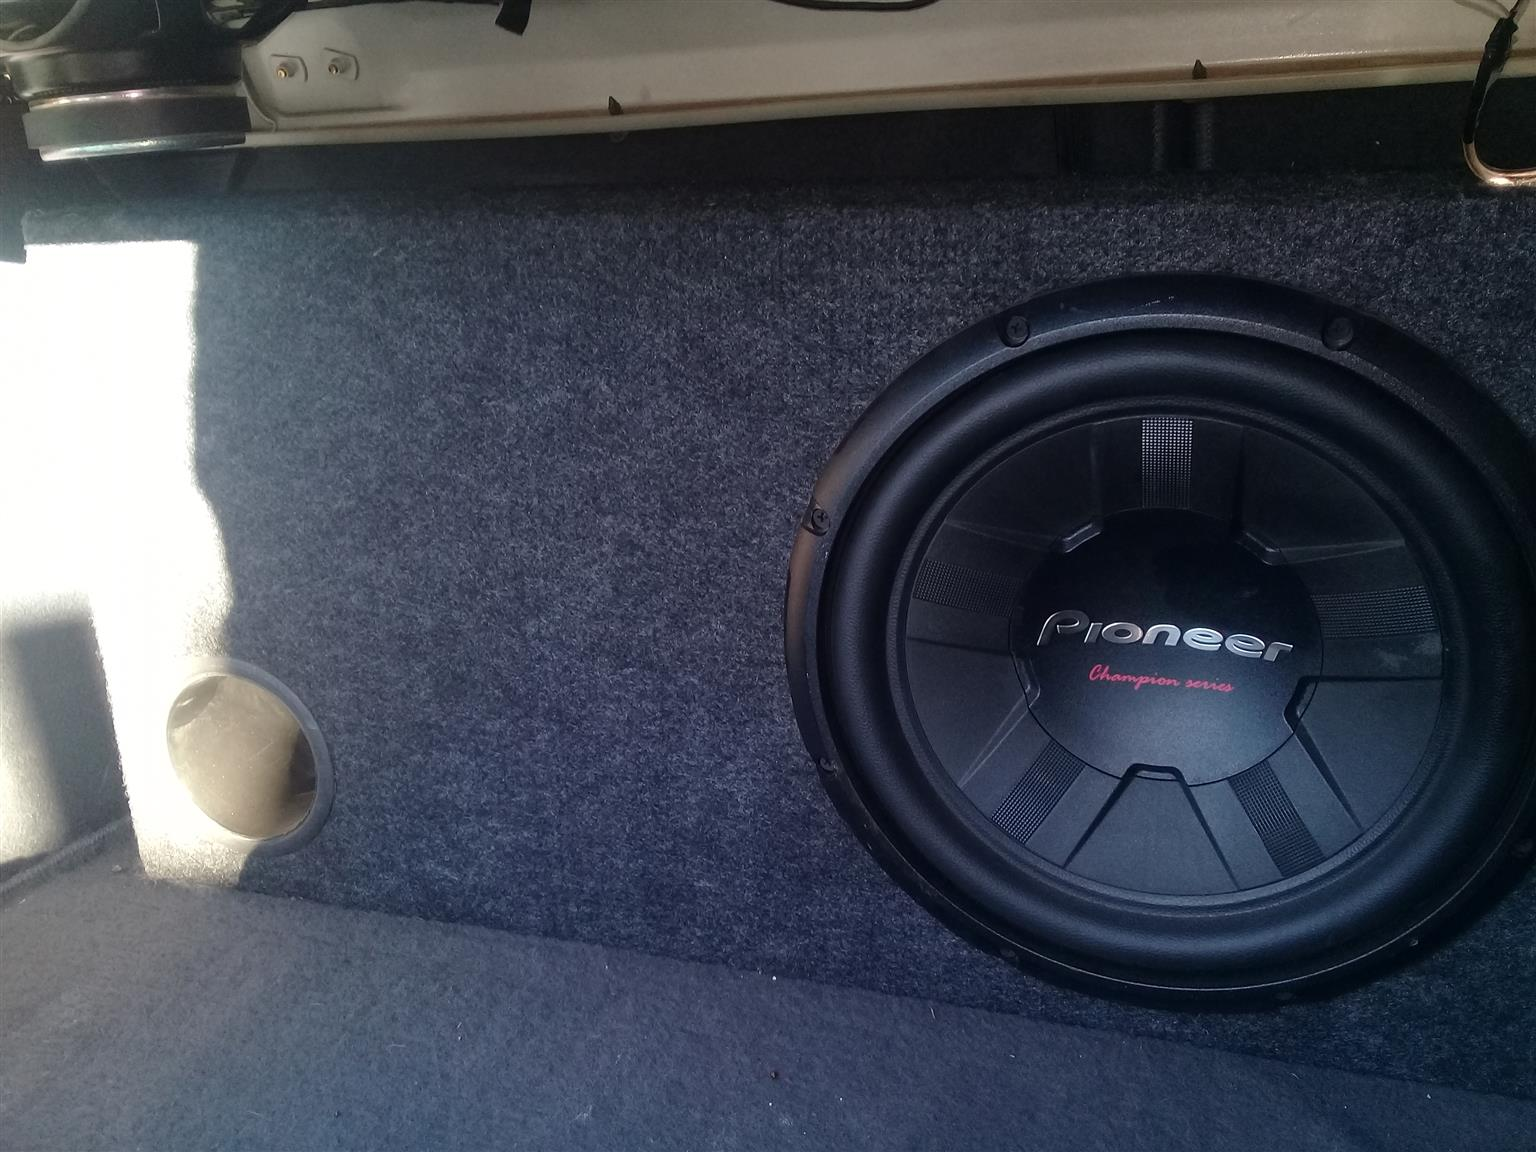 Pioneer Subwoofer build in a box as good as new